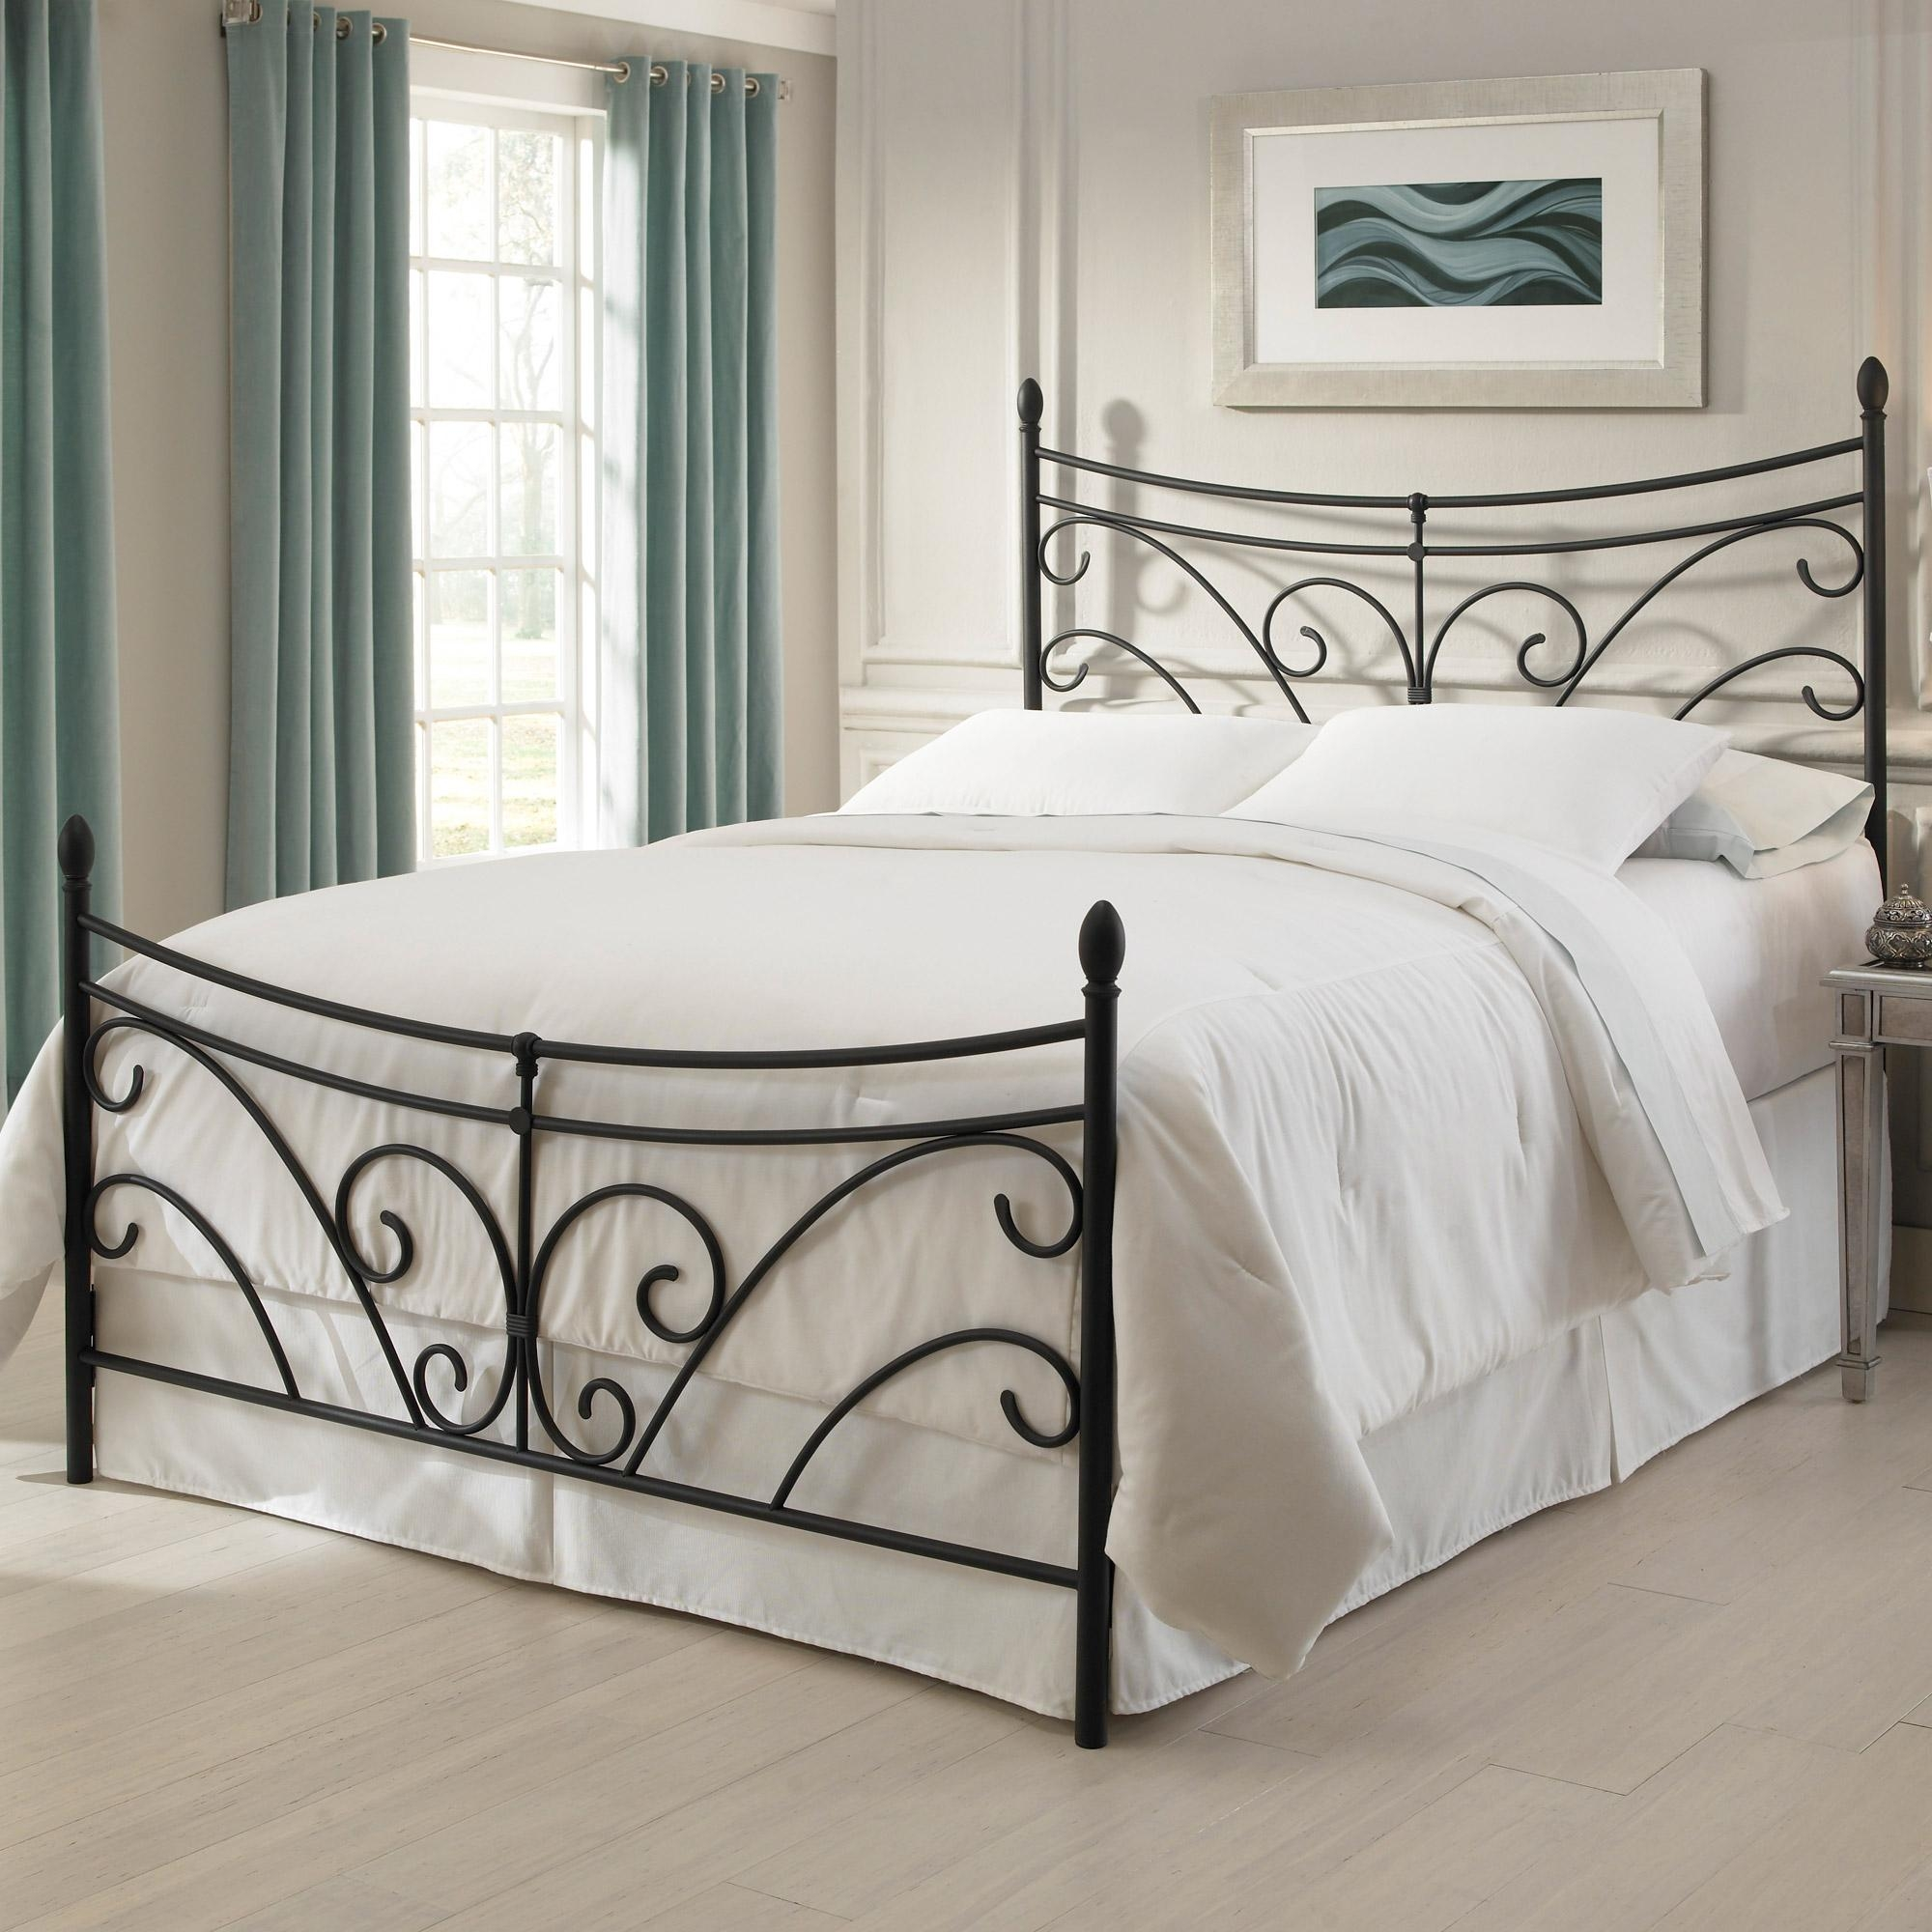 Bedroom : Circle Metal Wall Art Iron Wall Decor Round Metal Wall Inside Large Wrought Iron Wall Art (Image 3 of 20)